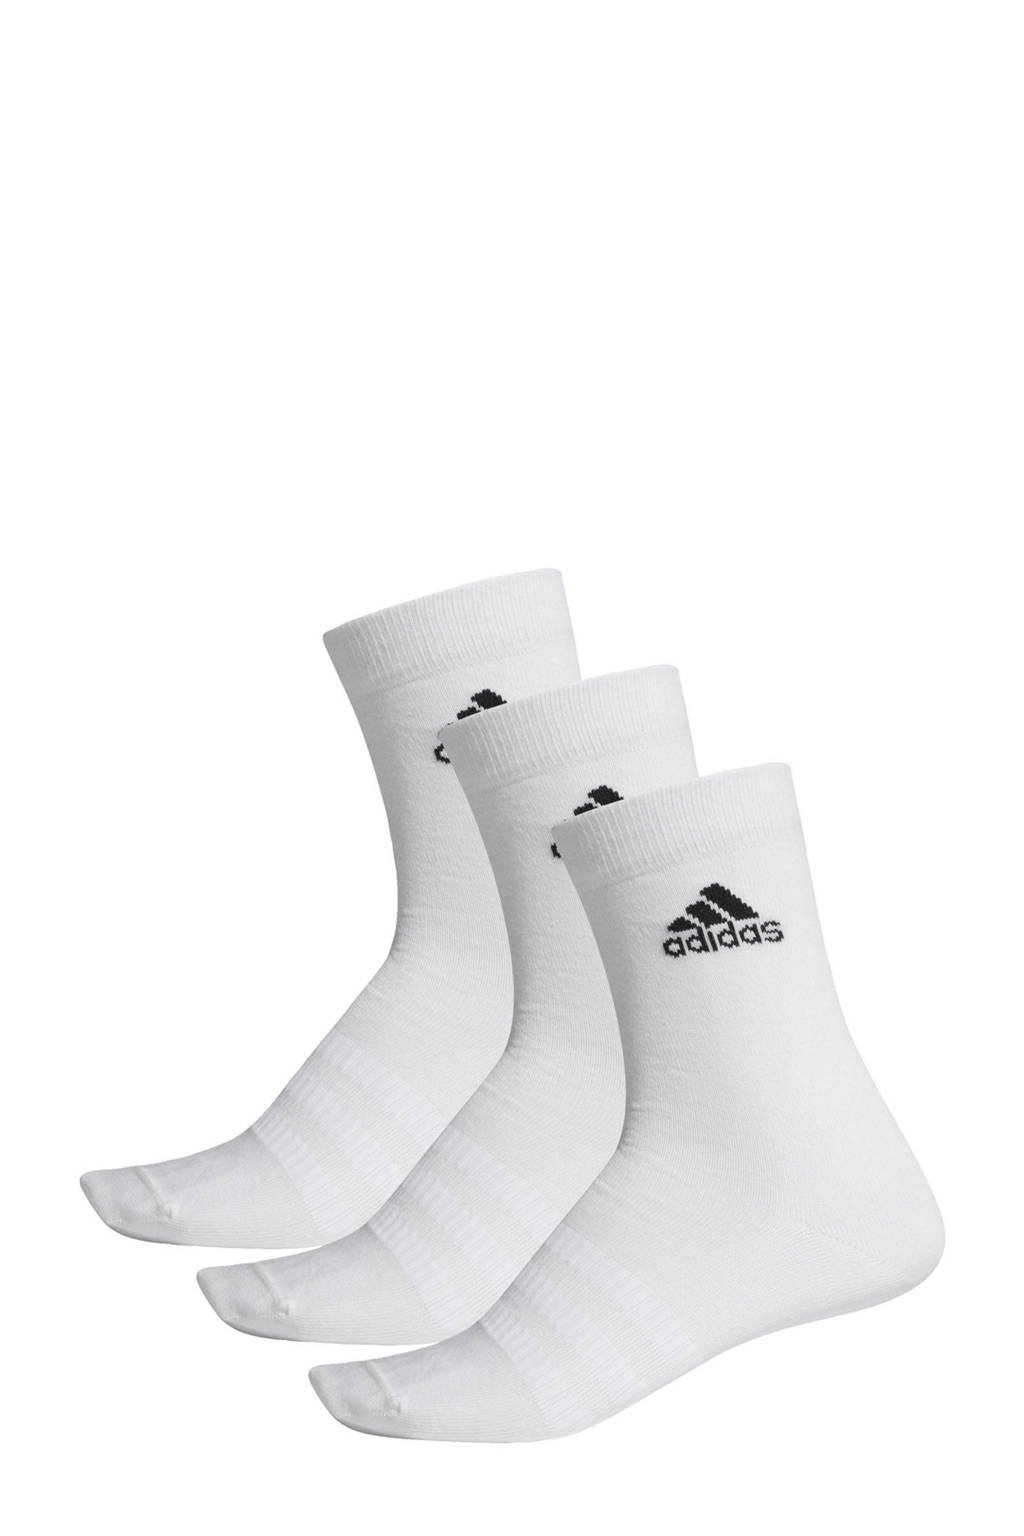 adidas Performance   sportsokken - set van 3 wit, Wit